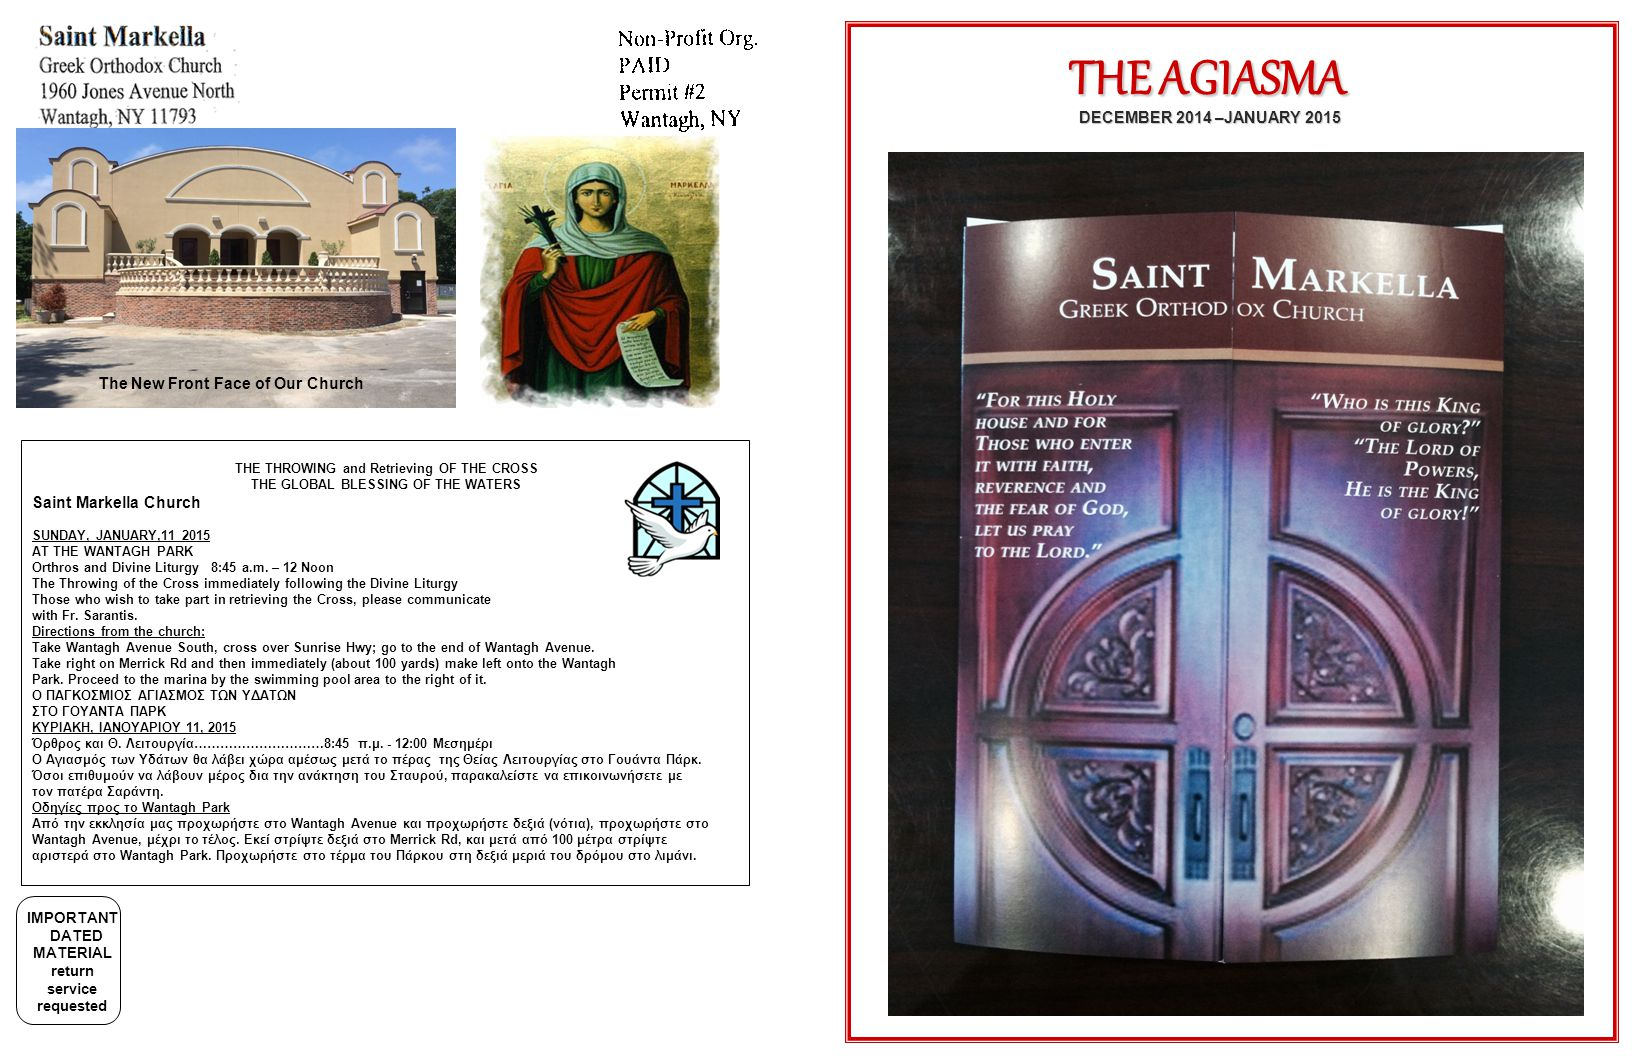 THE AGIASMA DECEMBER 2014 –JANUARY 2015